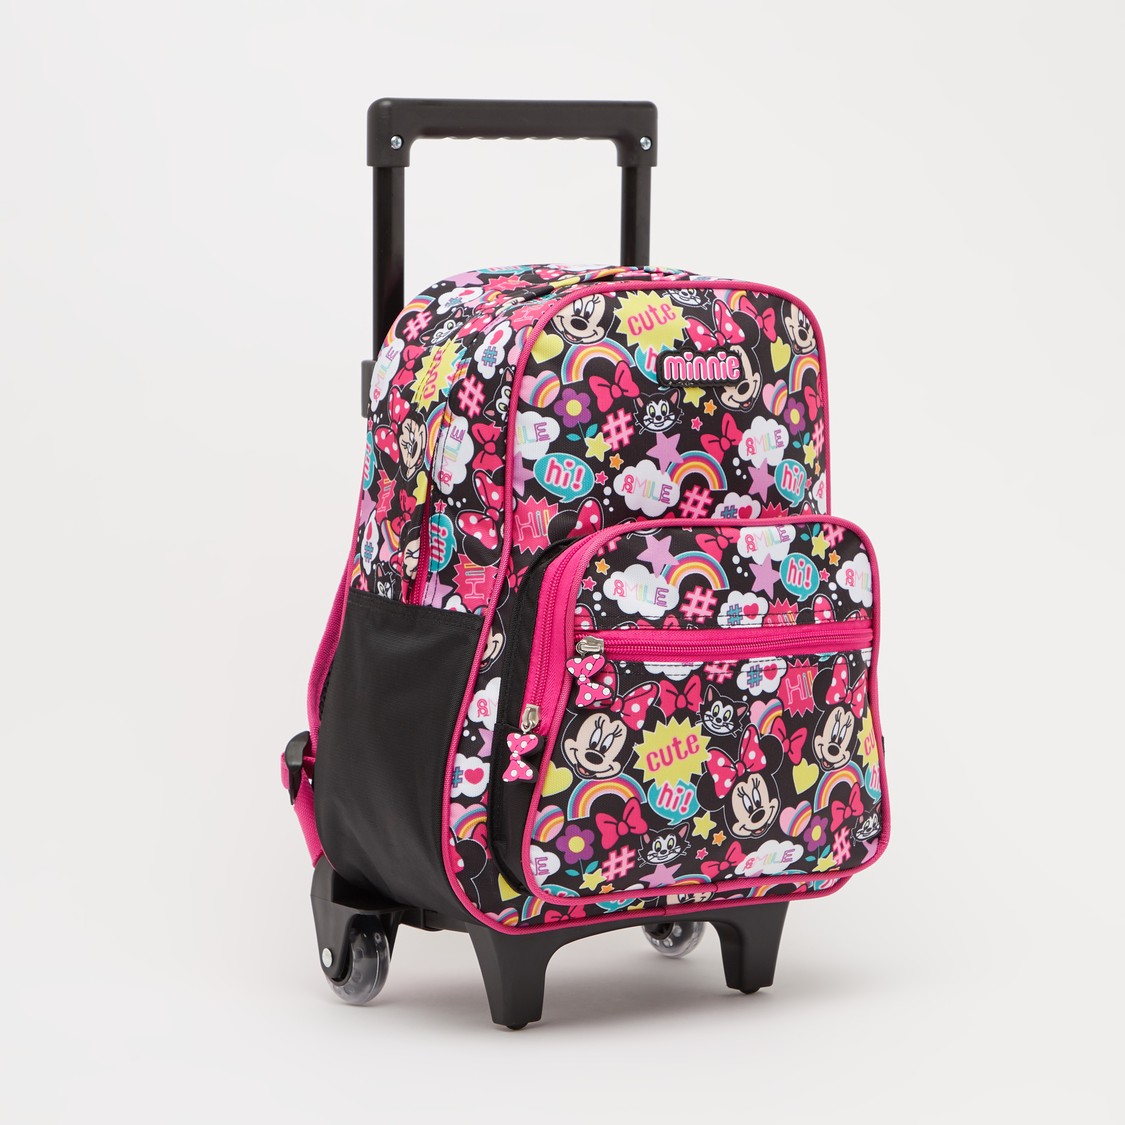 Minnie Mouse Print Trolley Backpack with Retractable Handle - 13 Inches